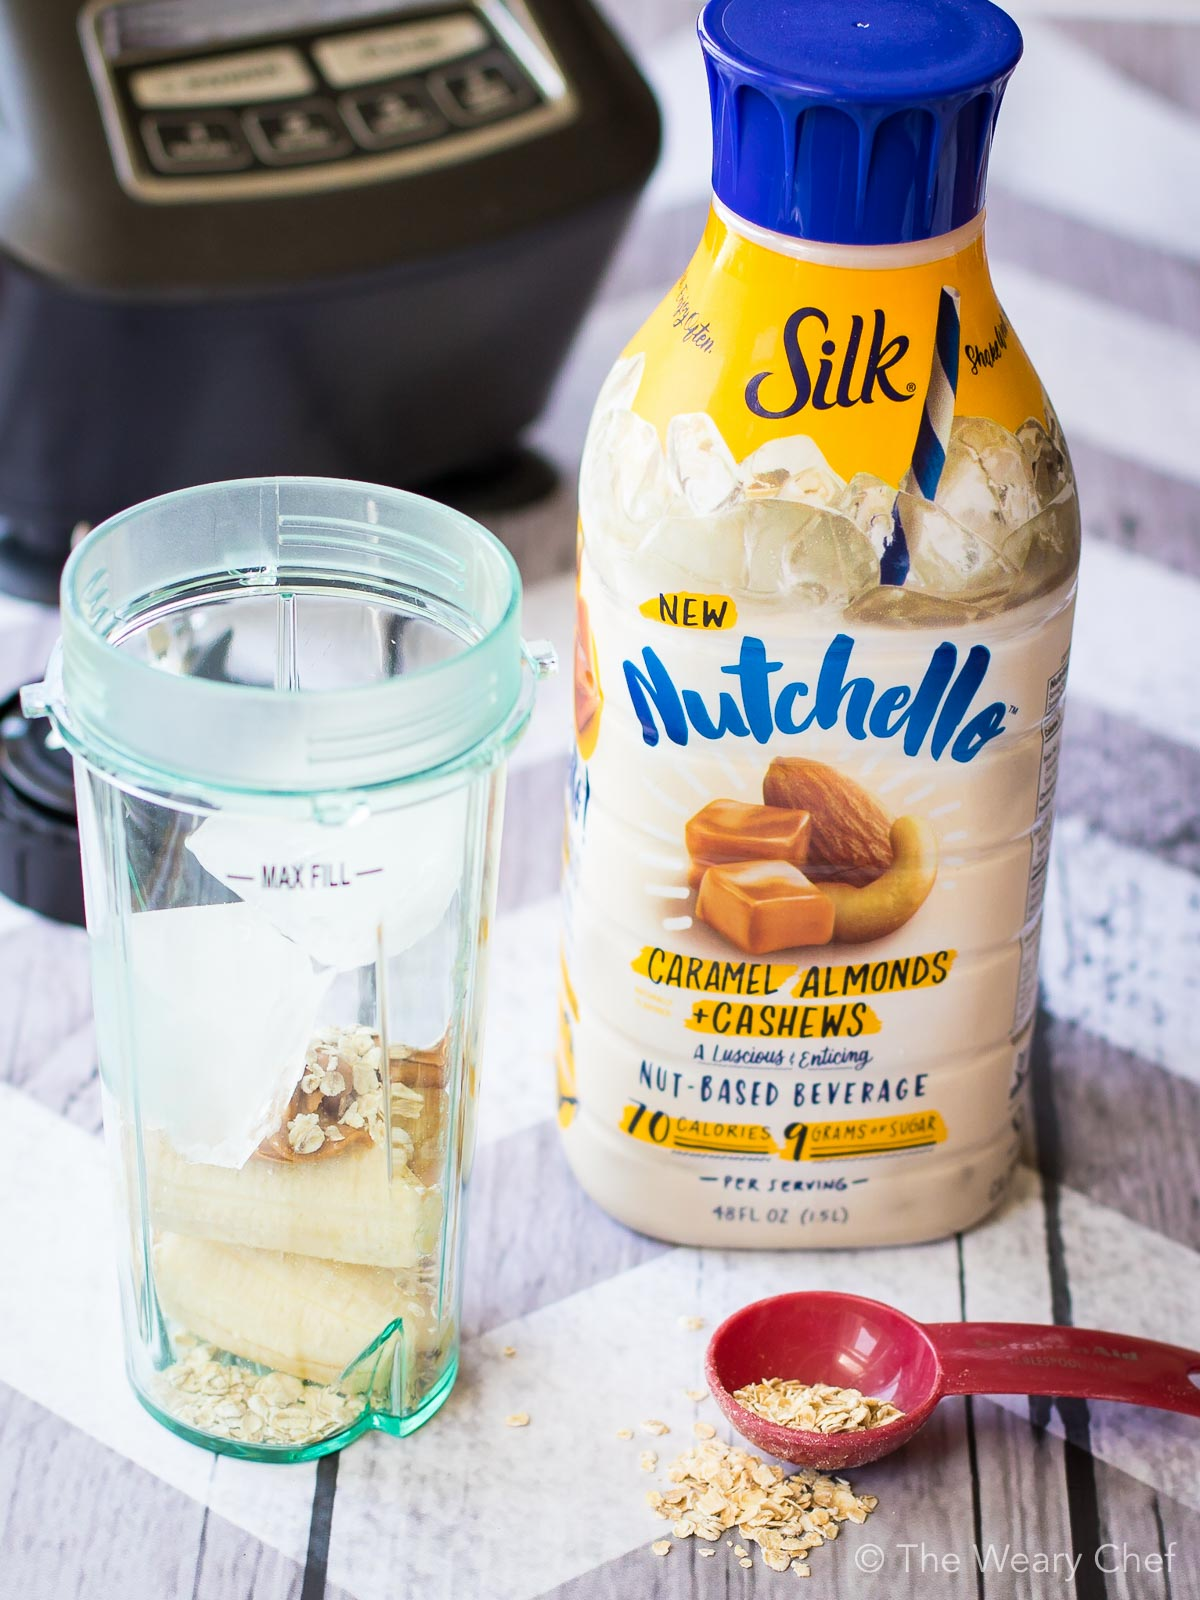 Whip up a smoothie with rich, creamy Silk Nutchello!